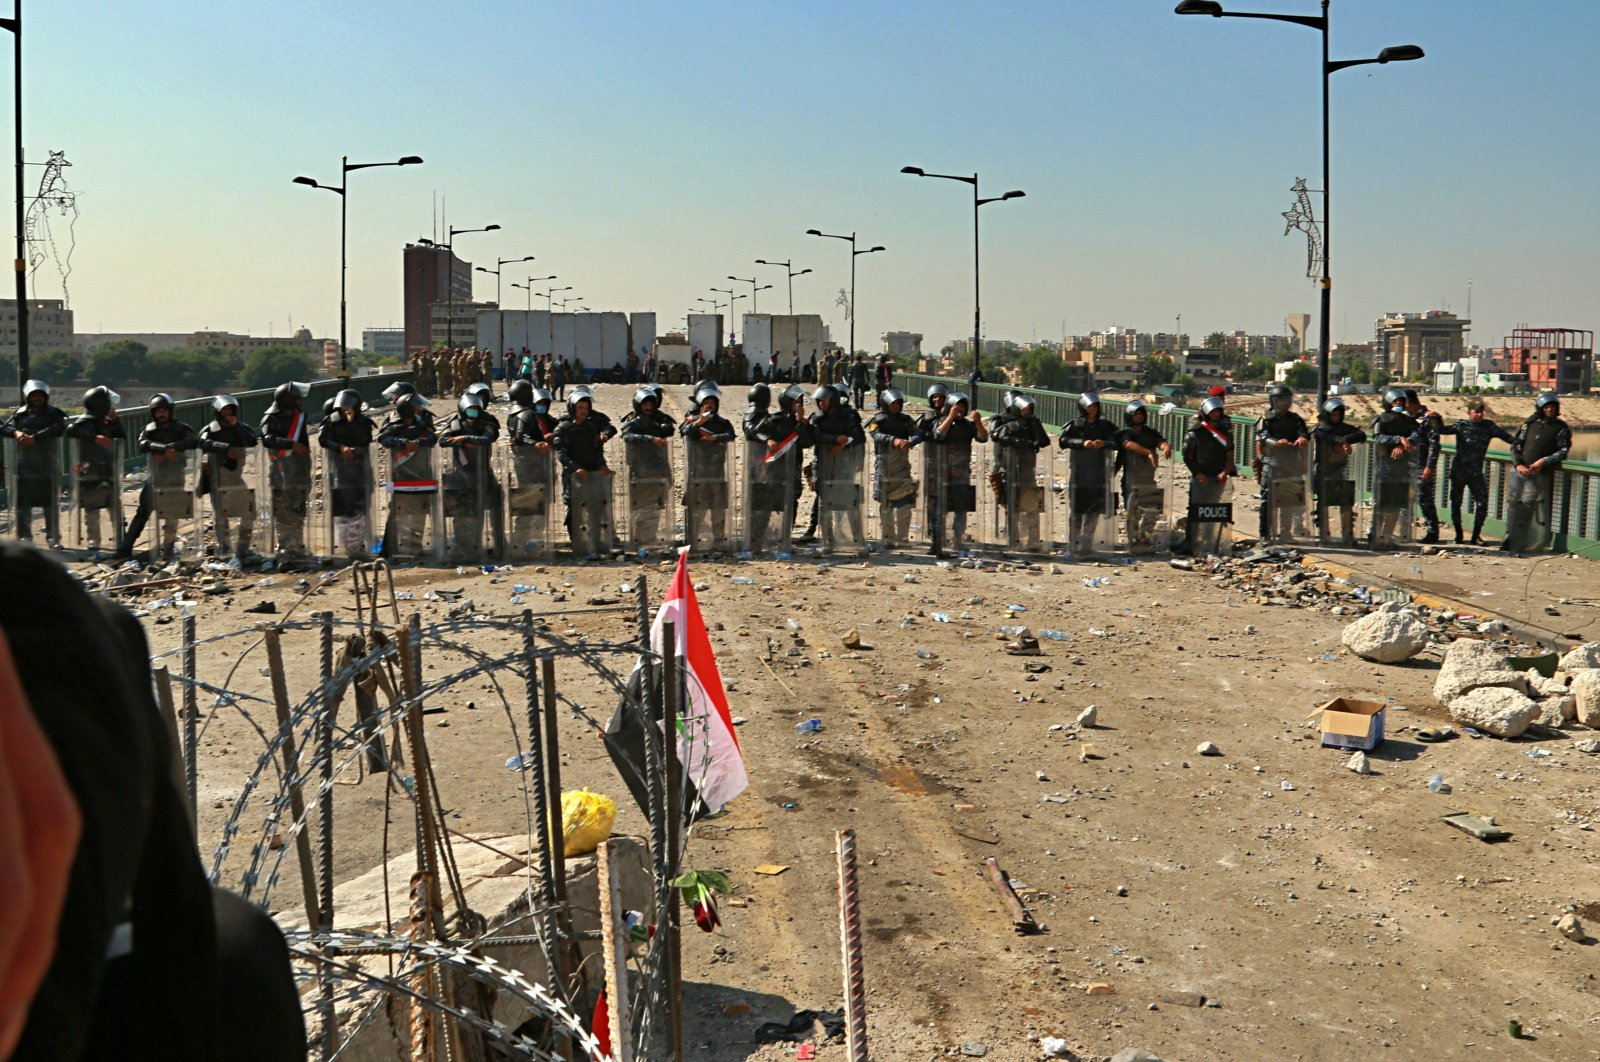 Security forces close the bridge leading to the Green Zone during a demonstration in Baghdad, Iraq, Oct. 26, 2019. (AP Photo)